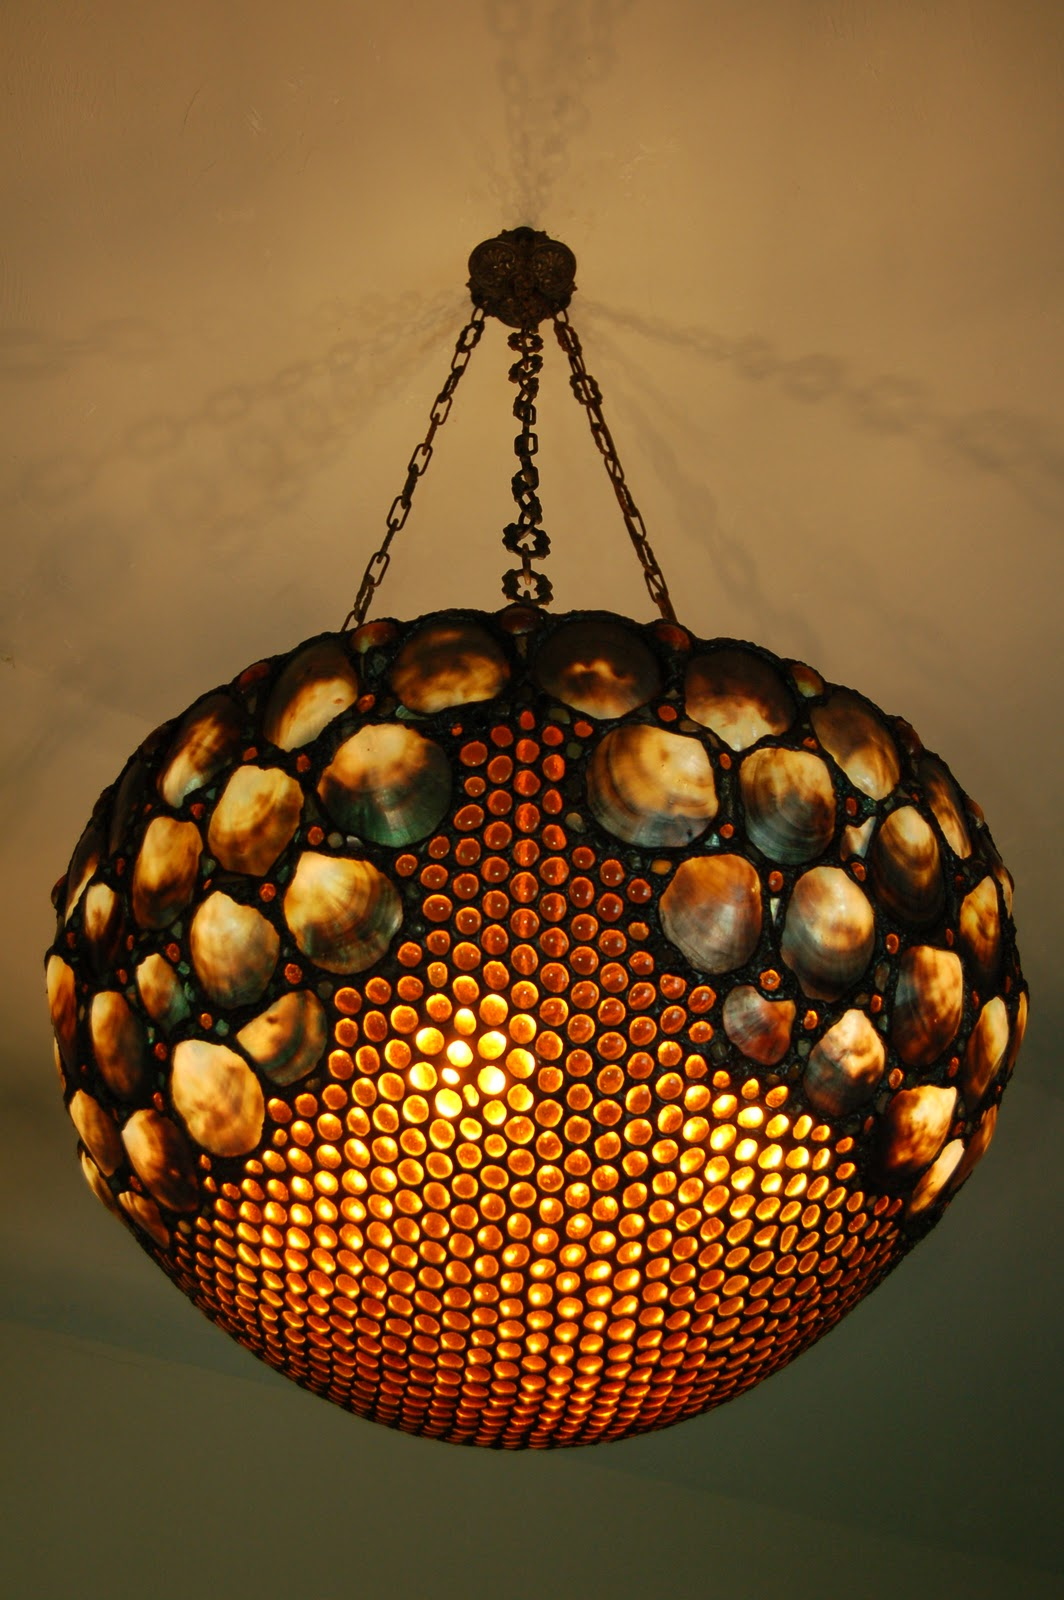 Seashell chandelier seashell lighting by drake lamps here comes the sun available for purchase please inquire for pricing arubaitofo Image collections